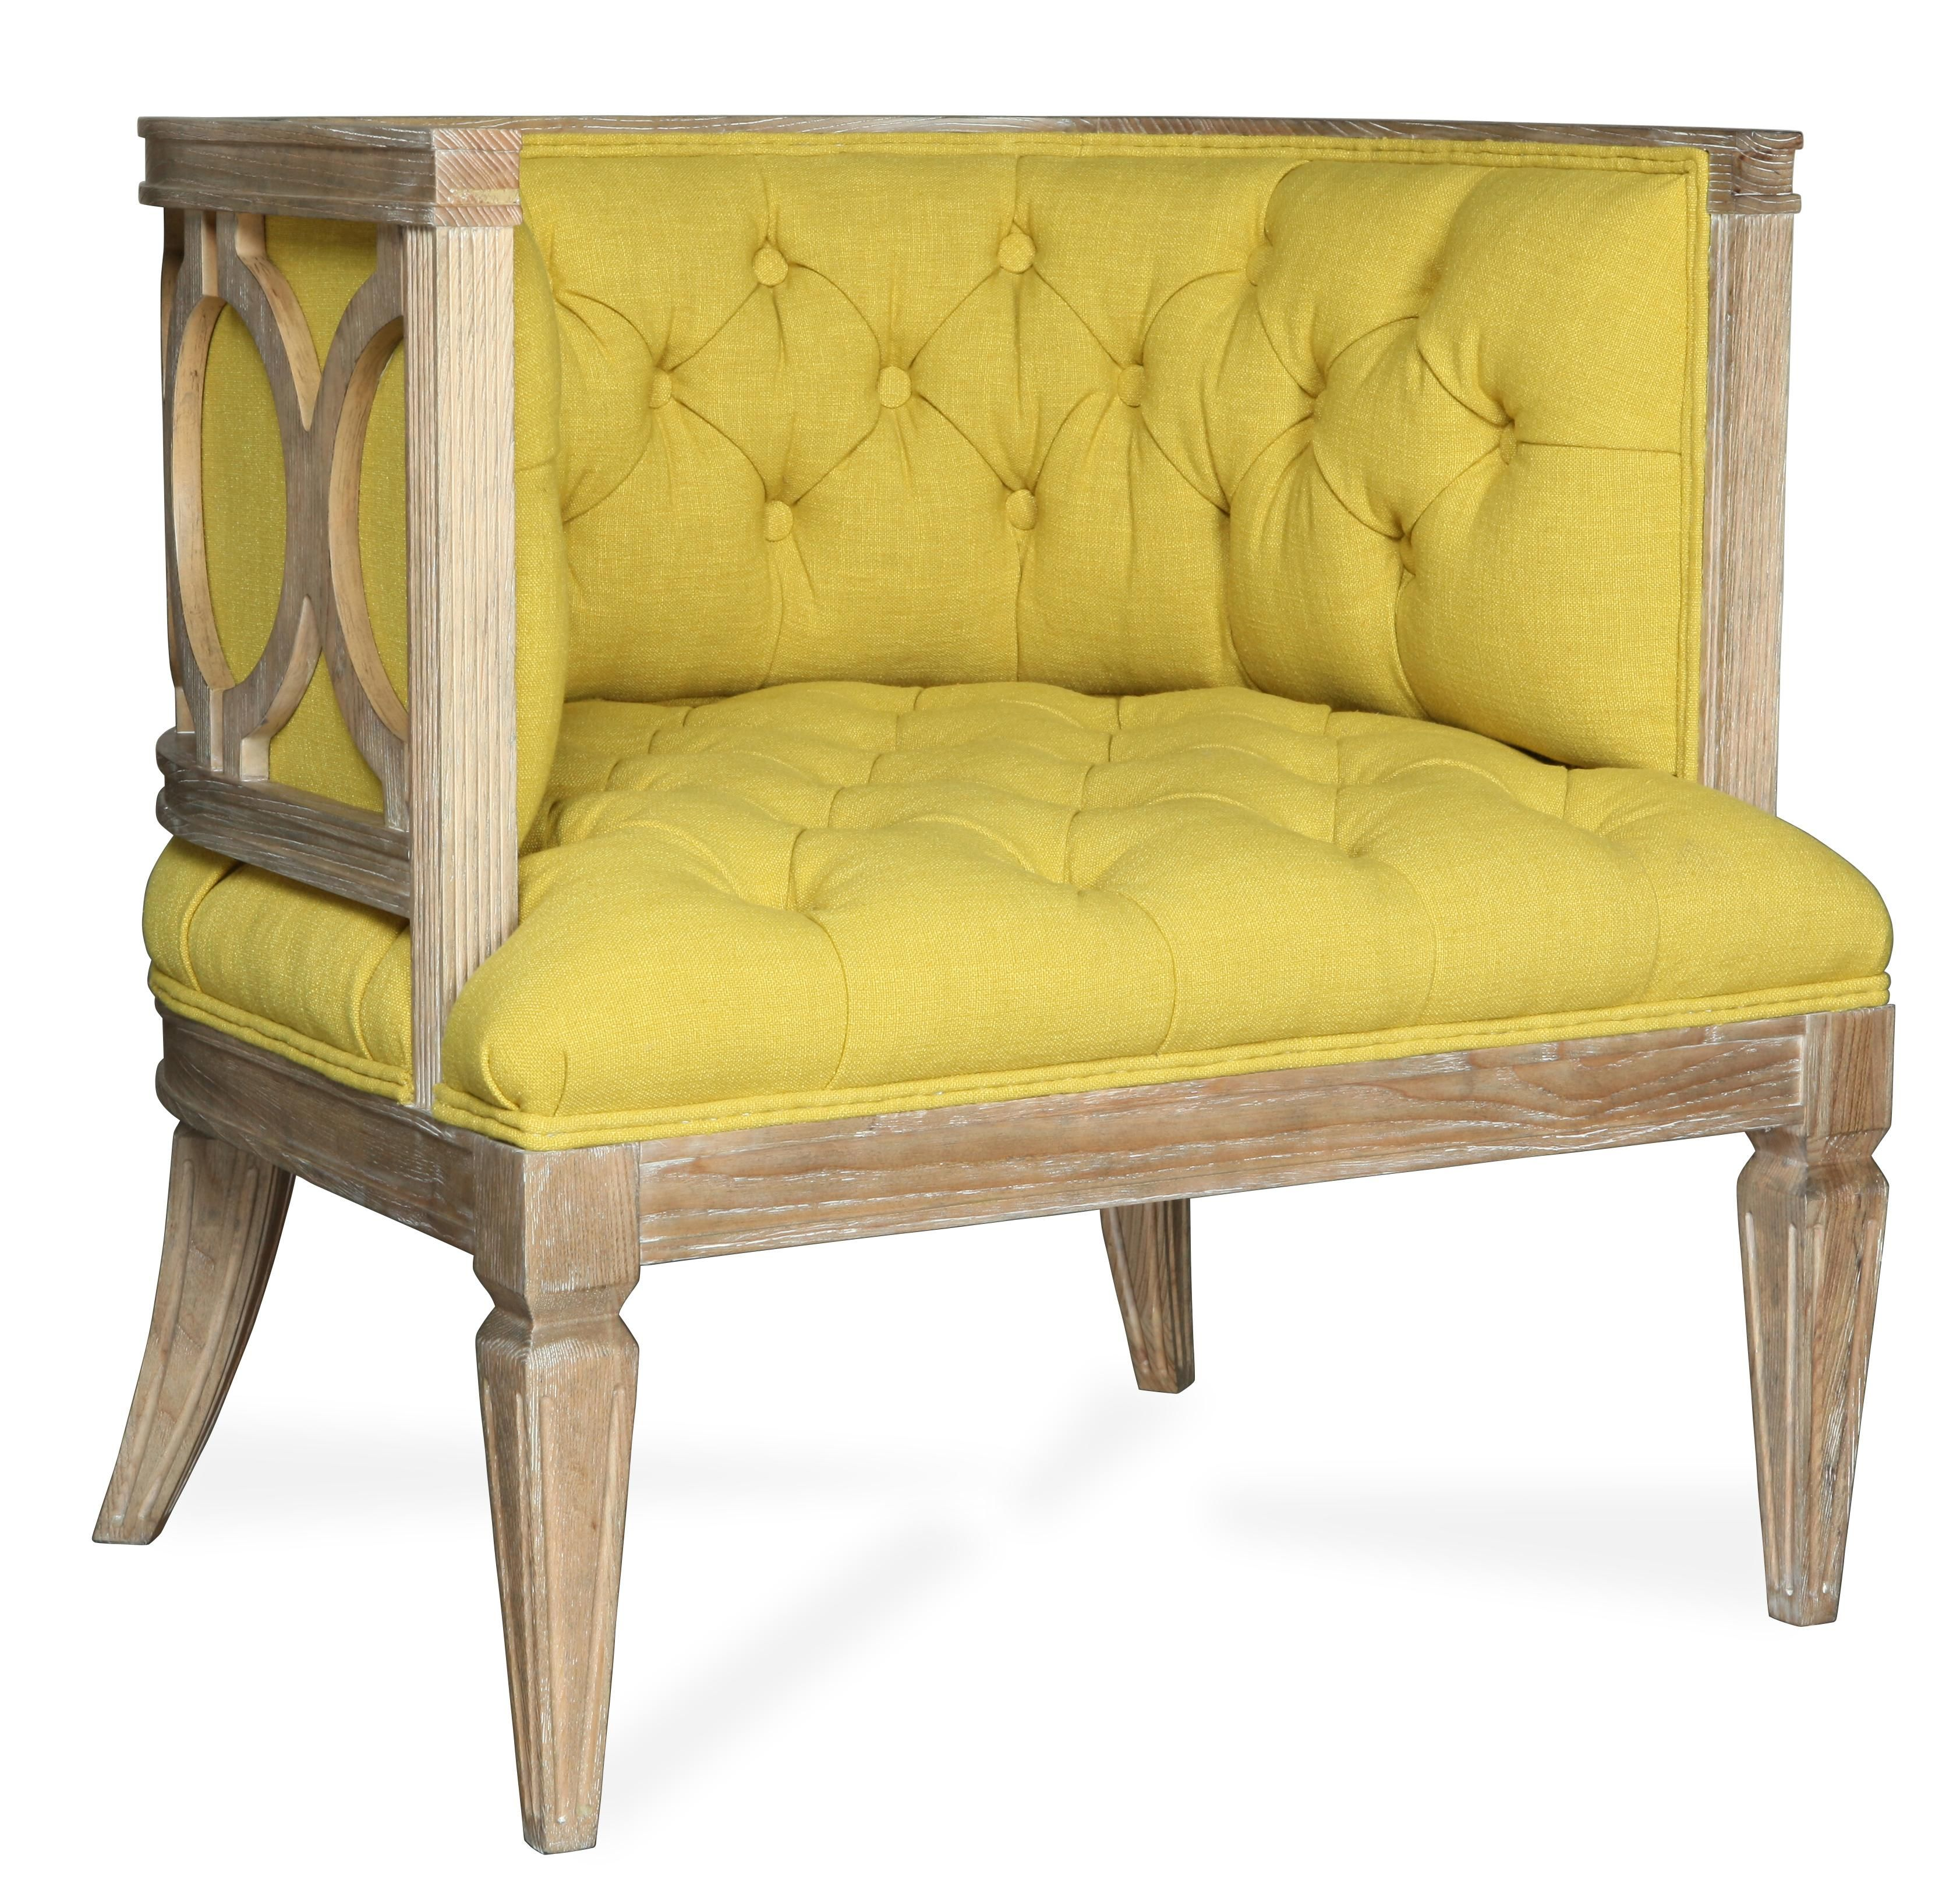 Rachlin Classics Tufted Chair Available At Stoney Creek Furniture